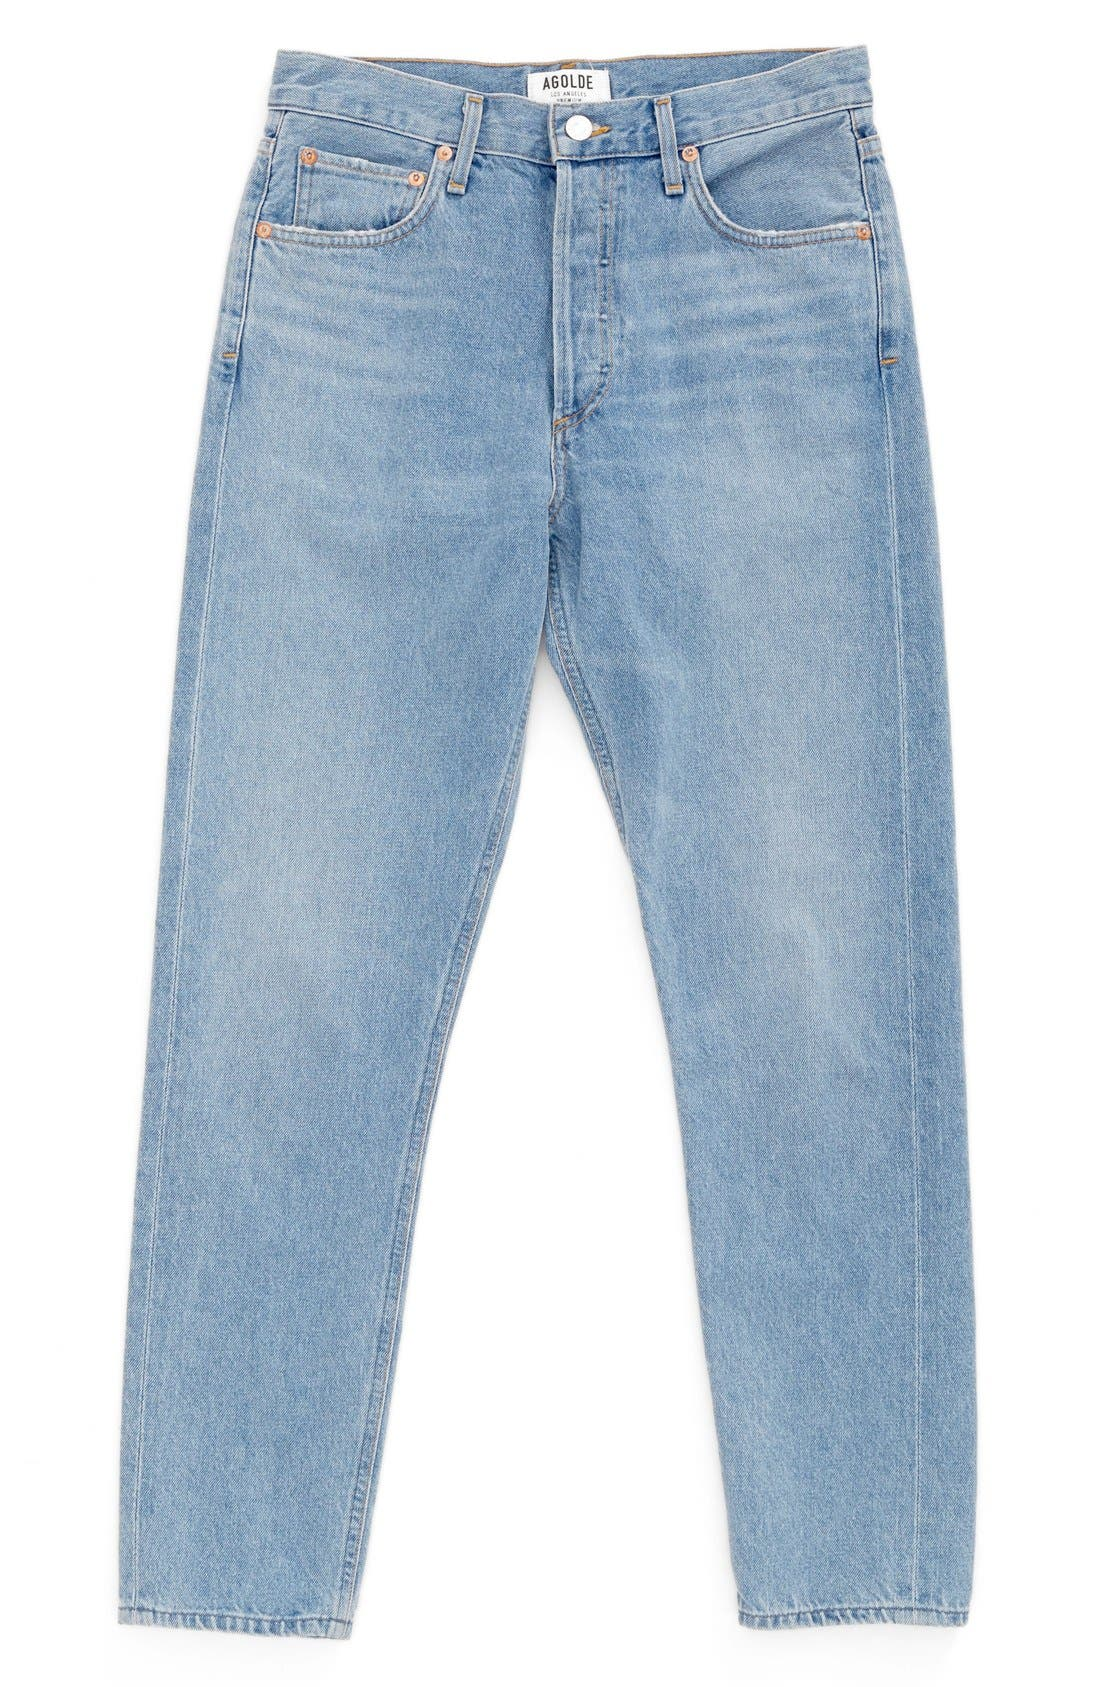 Main Image - AGOLDE Jamie High Rise Classic Jeans (Women)